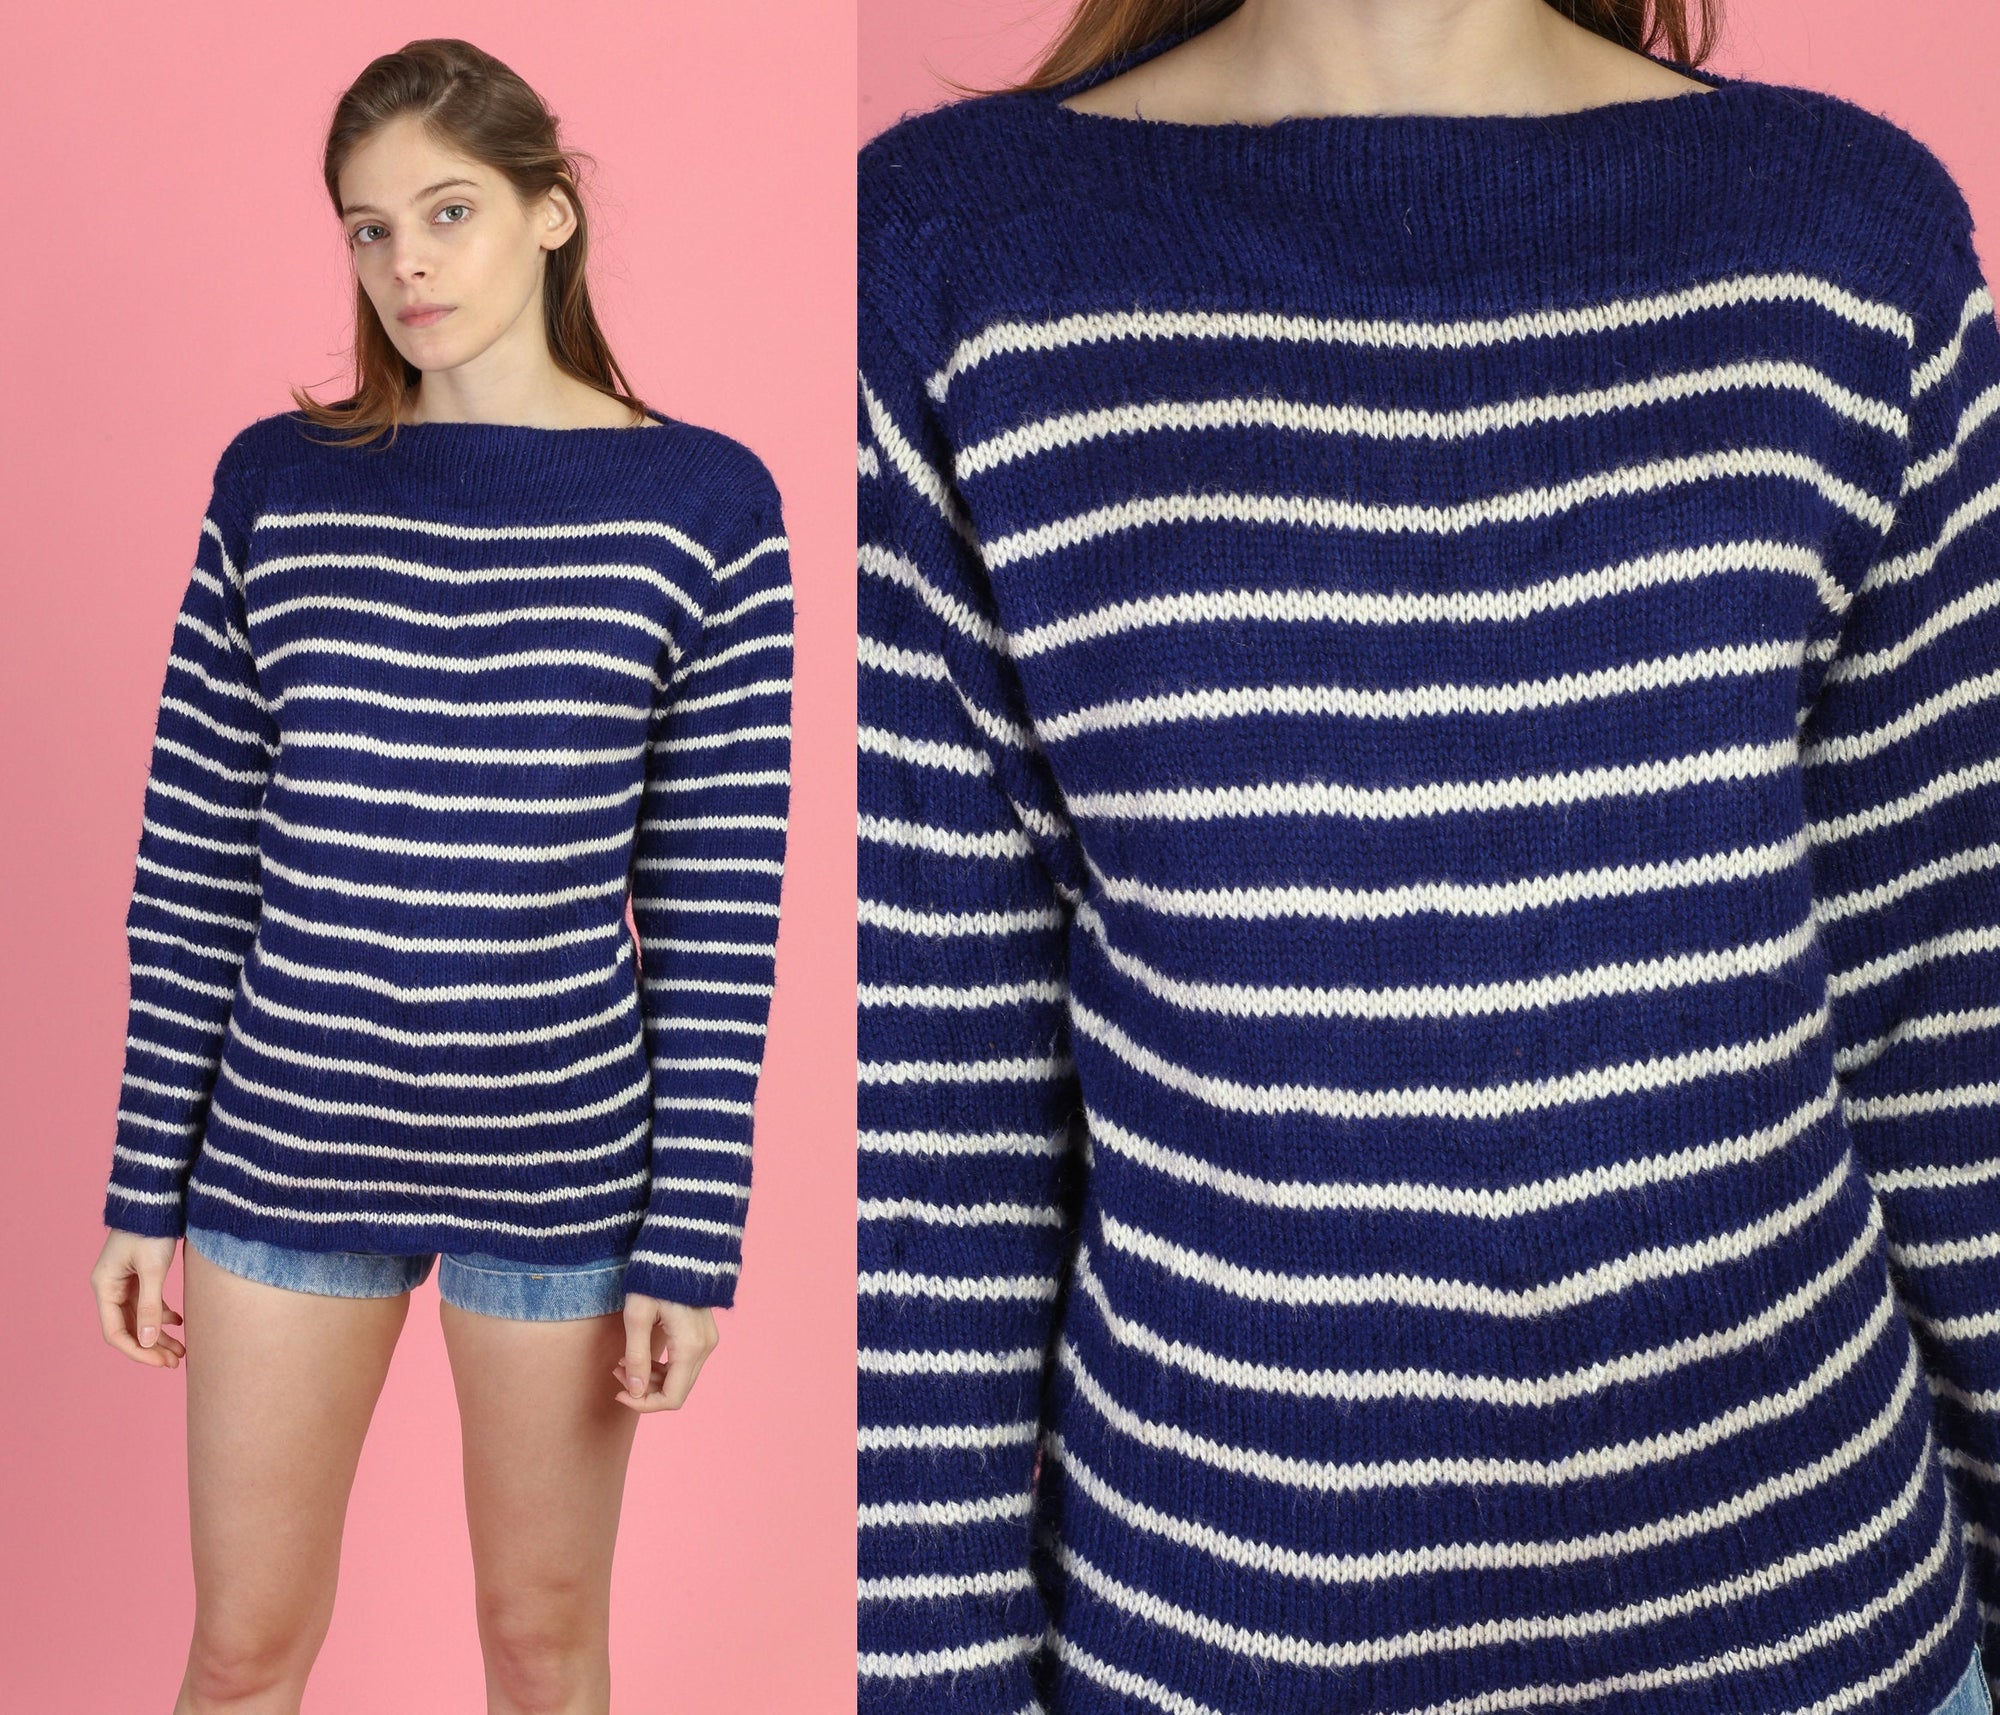 Vintage Navy Blue Striped Boat Neck Sweater - Medium